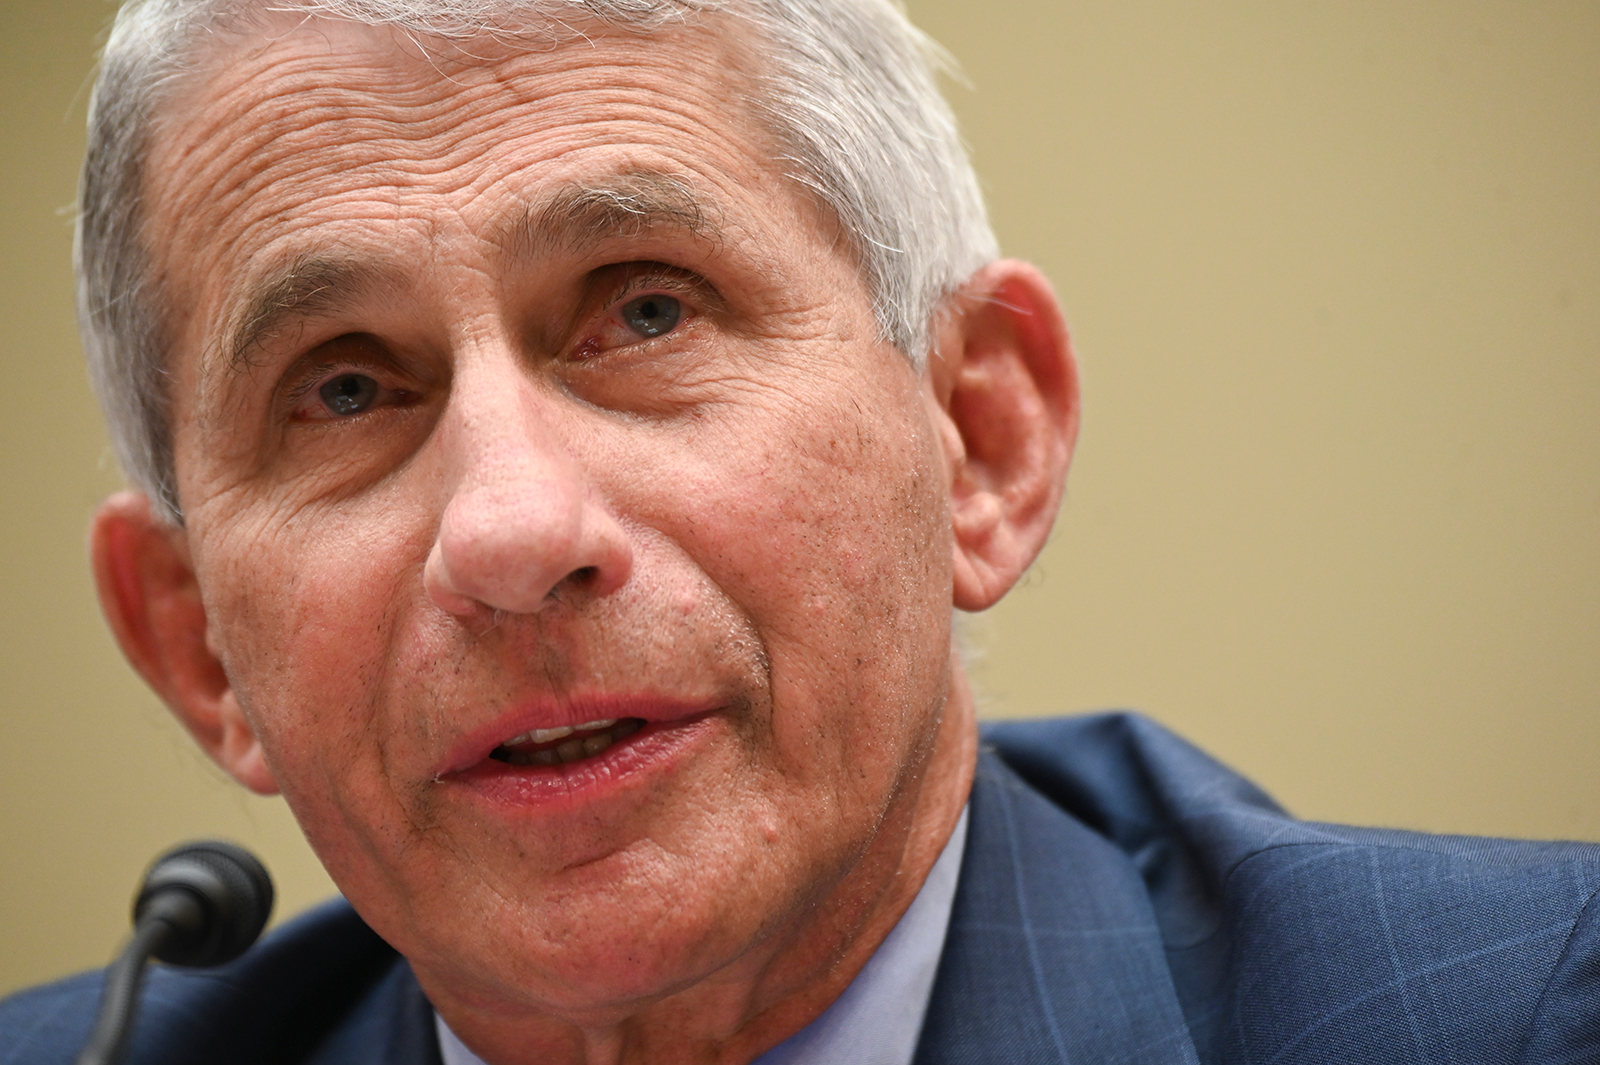 Dr. Anthony Fauci, director of the US National Institute of Allergy and Infectious Diseases.